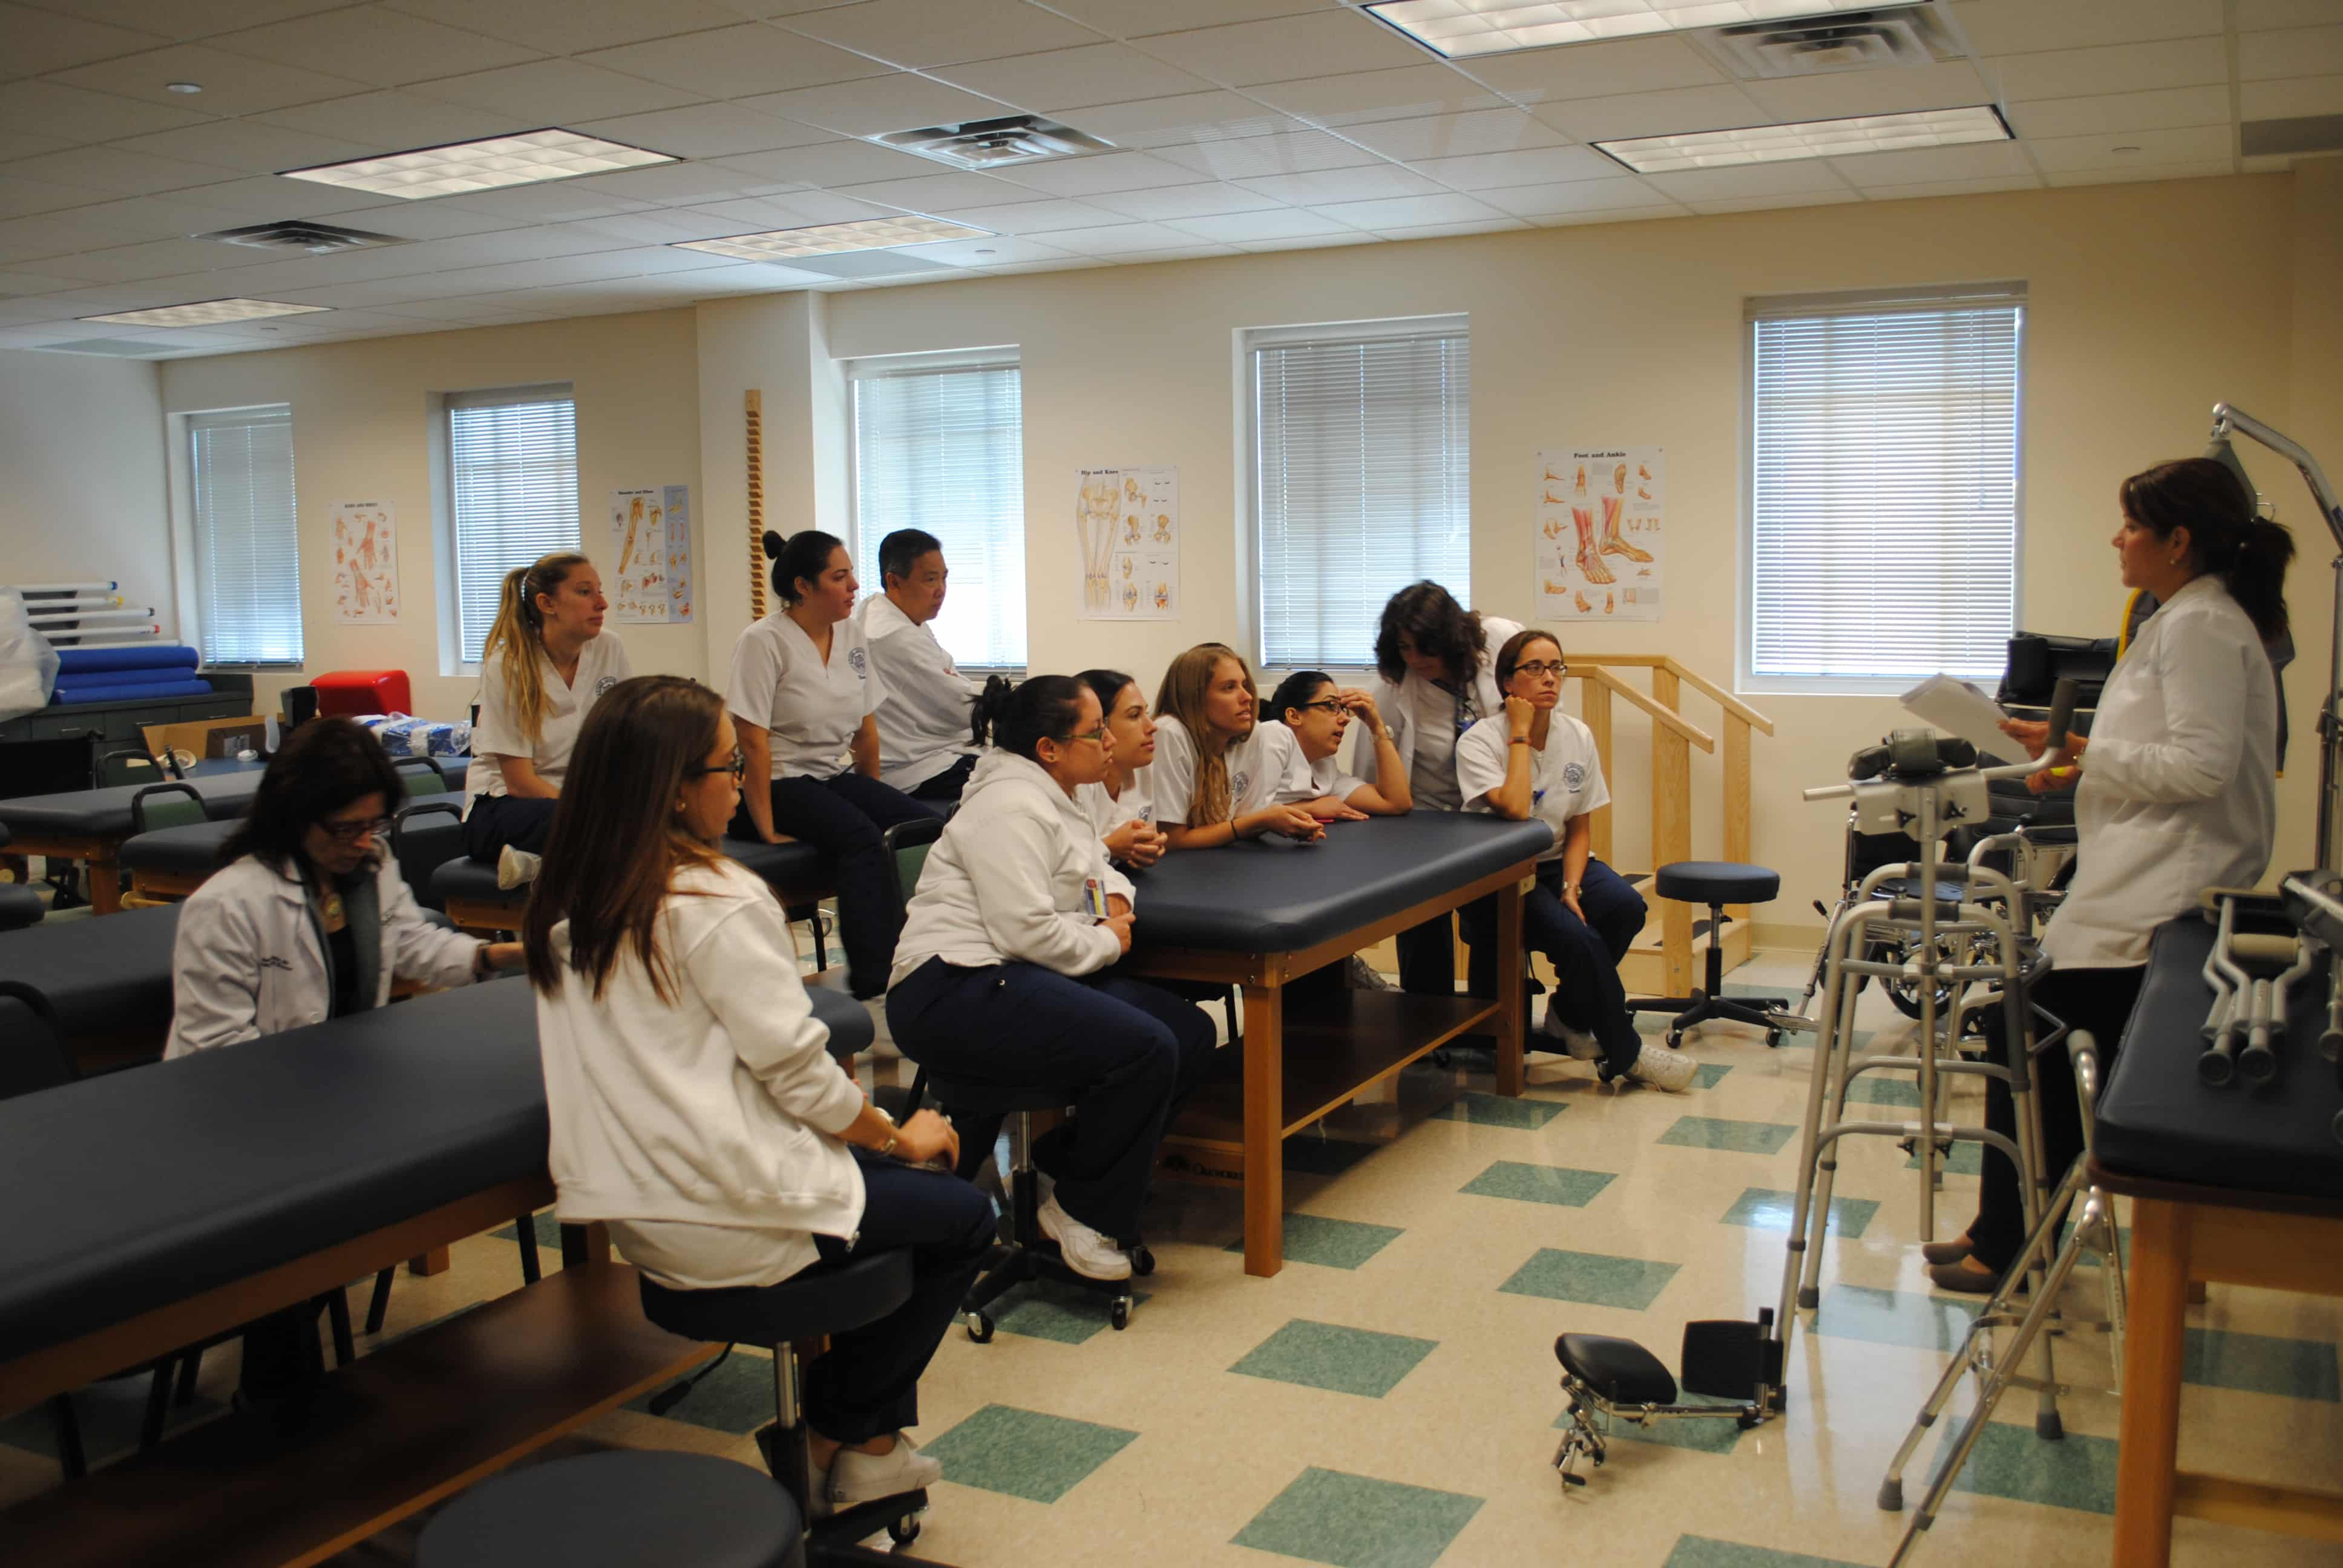 Interprofessional Education Experience Between the Nursing and PTA Programs at the Miami Campus